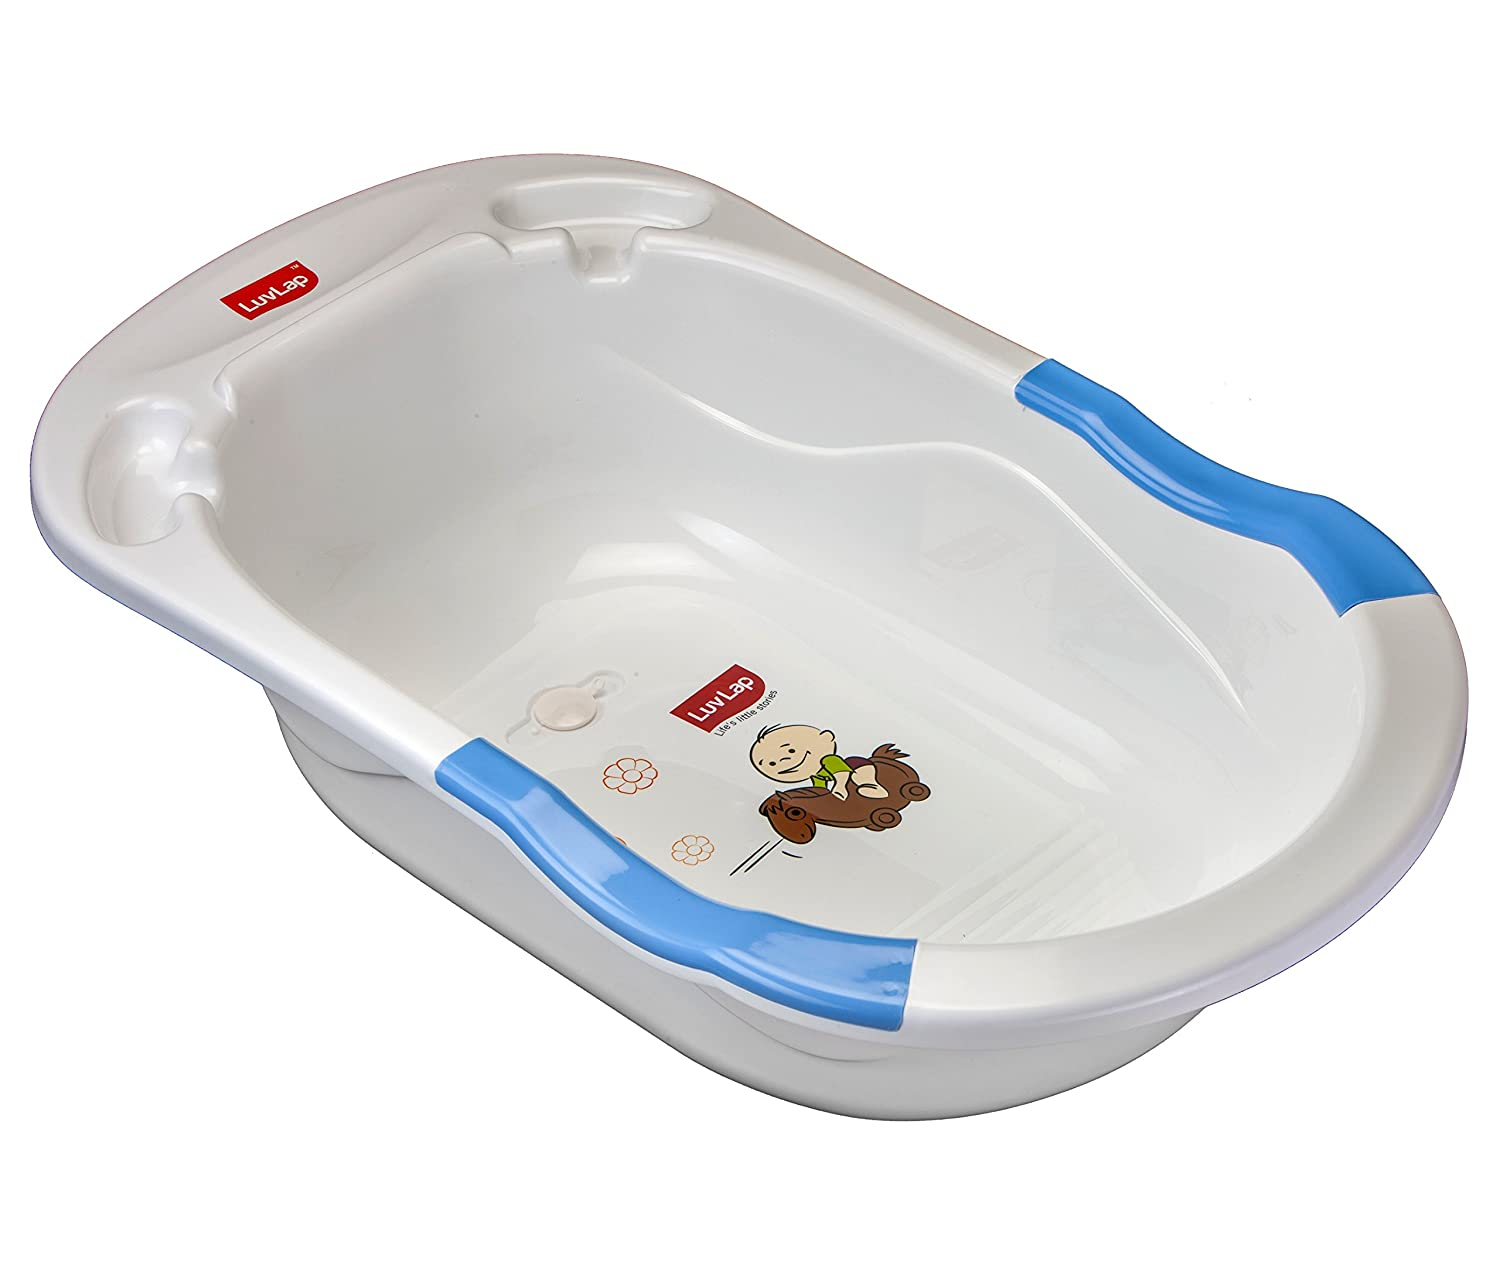 Buy Luvlap Baby Bubble Bathtub with Anti Slip (Blue) Online at Low ...